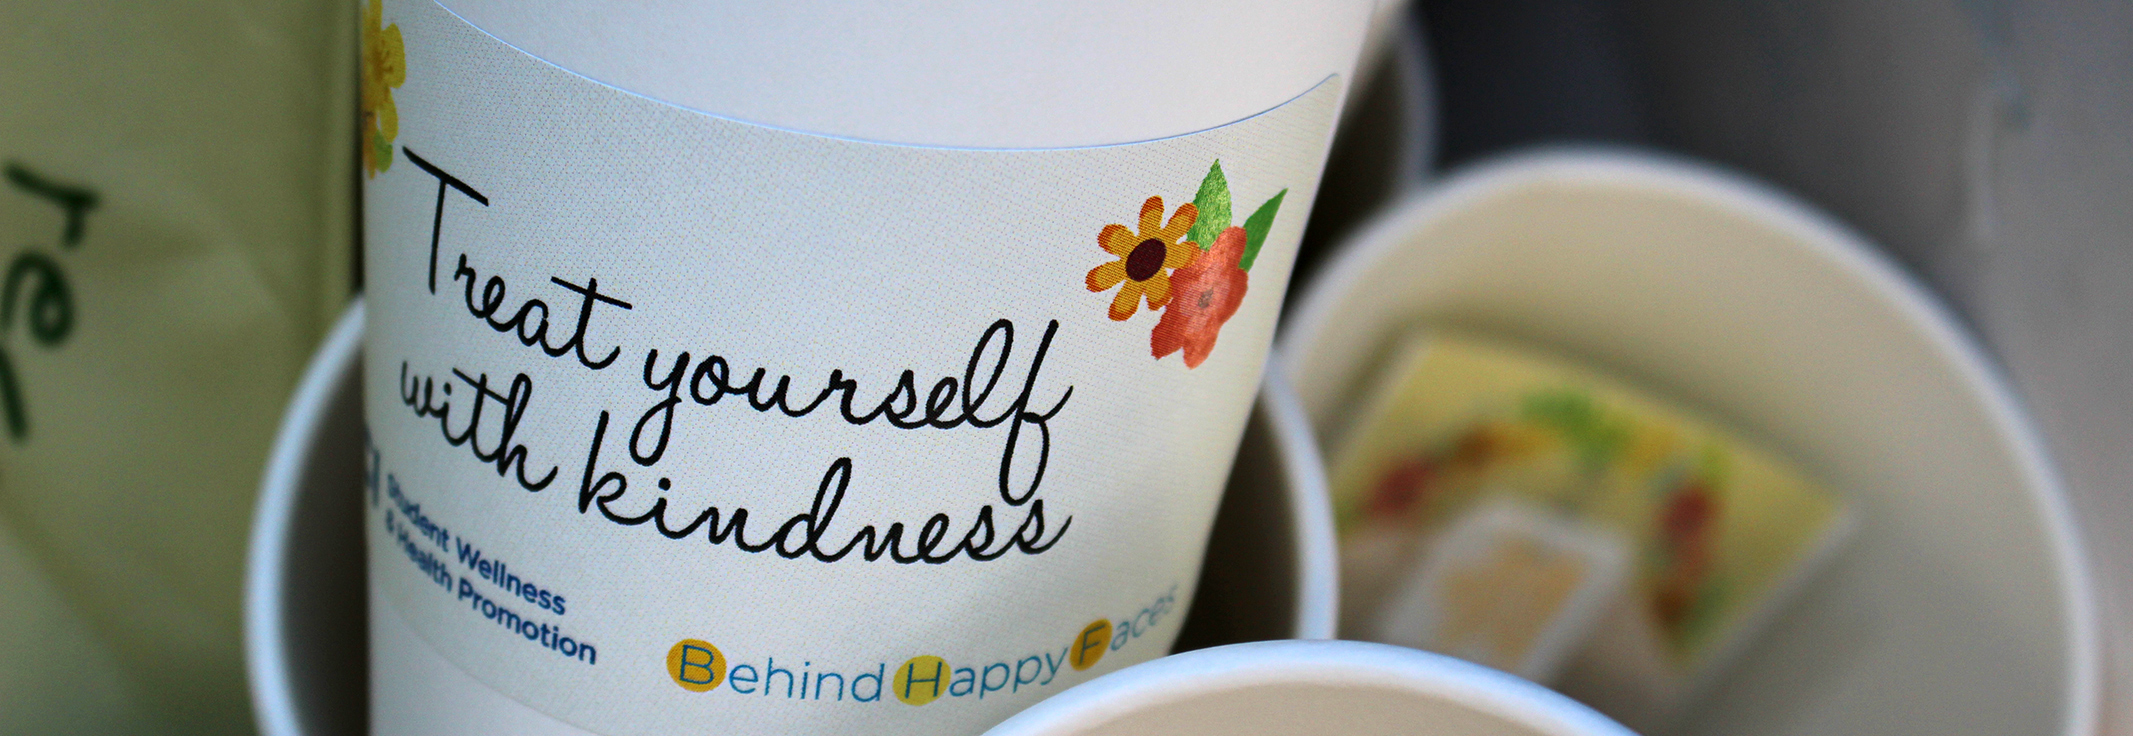 Close up of a coffee cup sleeve that says Treat yourself with kindness with branding for Behind Happy Faces and Student Wellness & Health Promotion